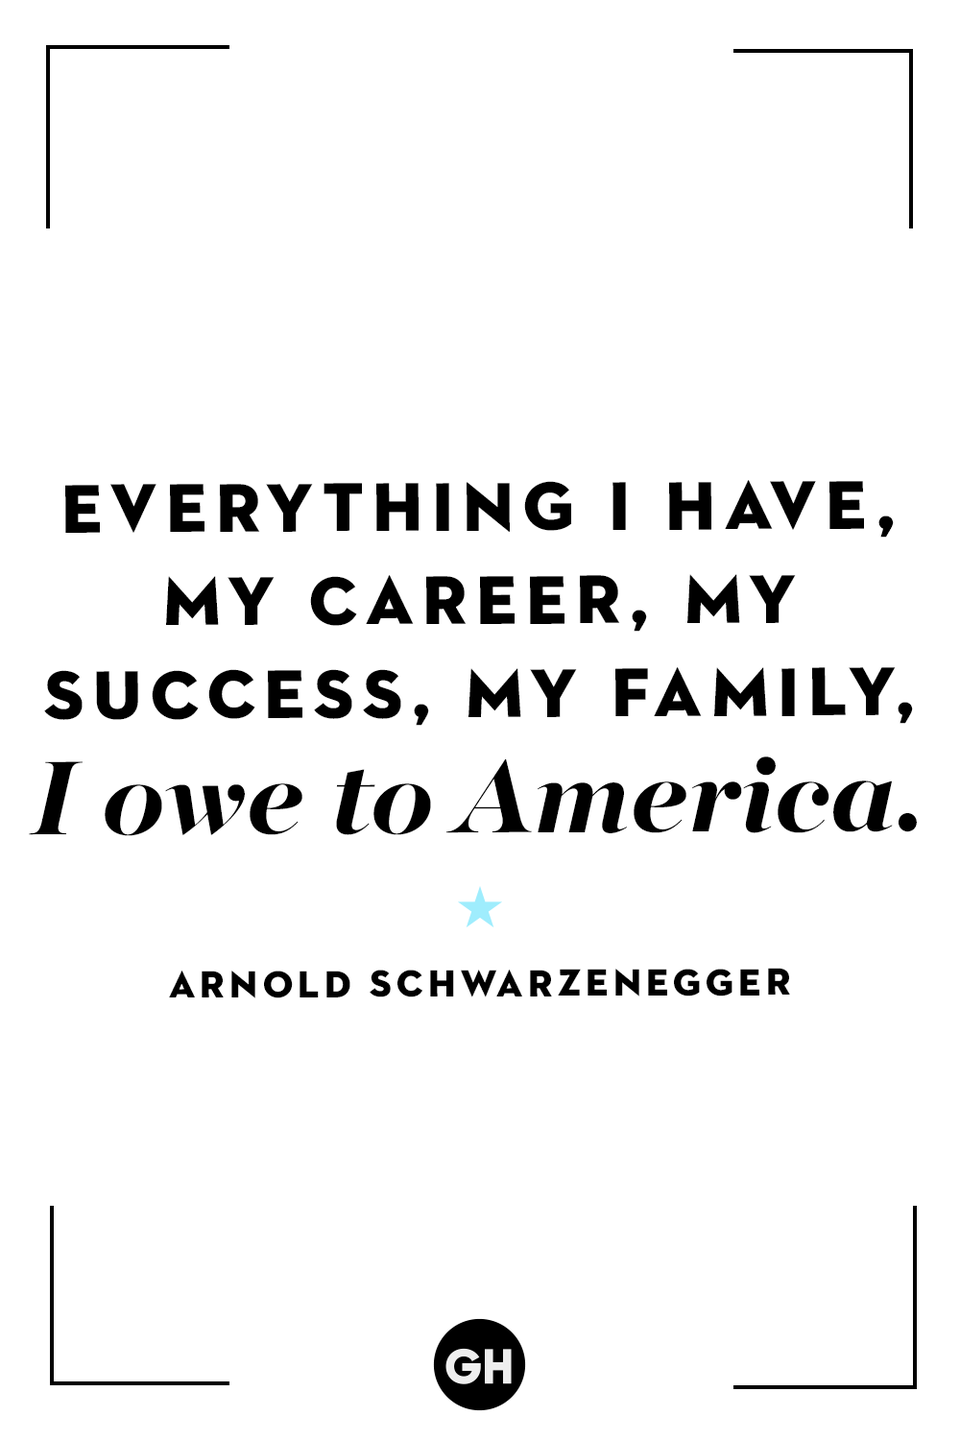 <p>Everything I have, my career, my success, my family, I owe to America.</p>